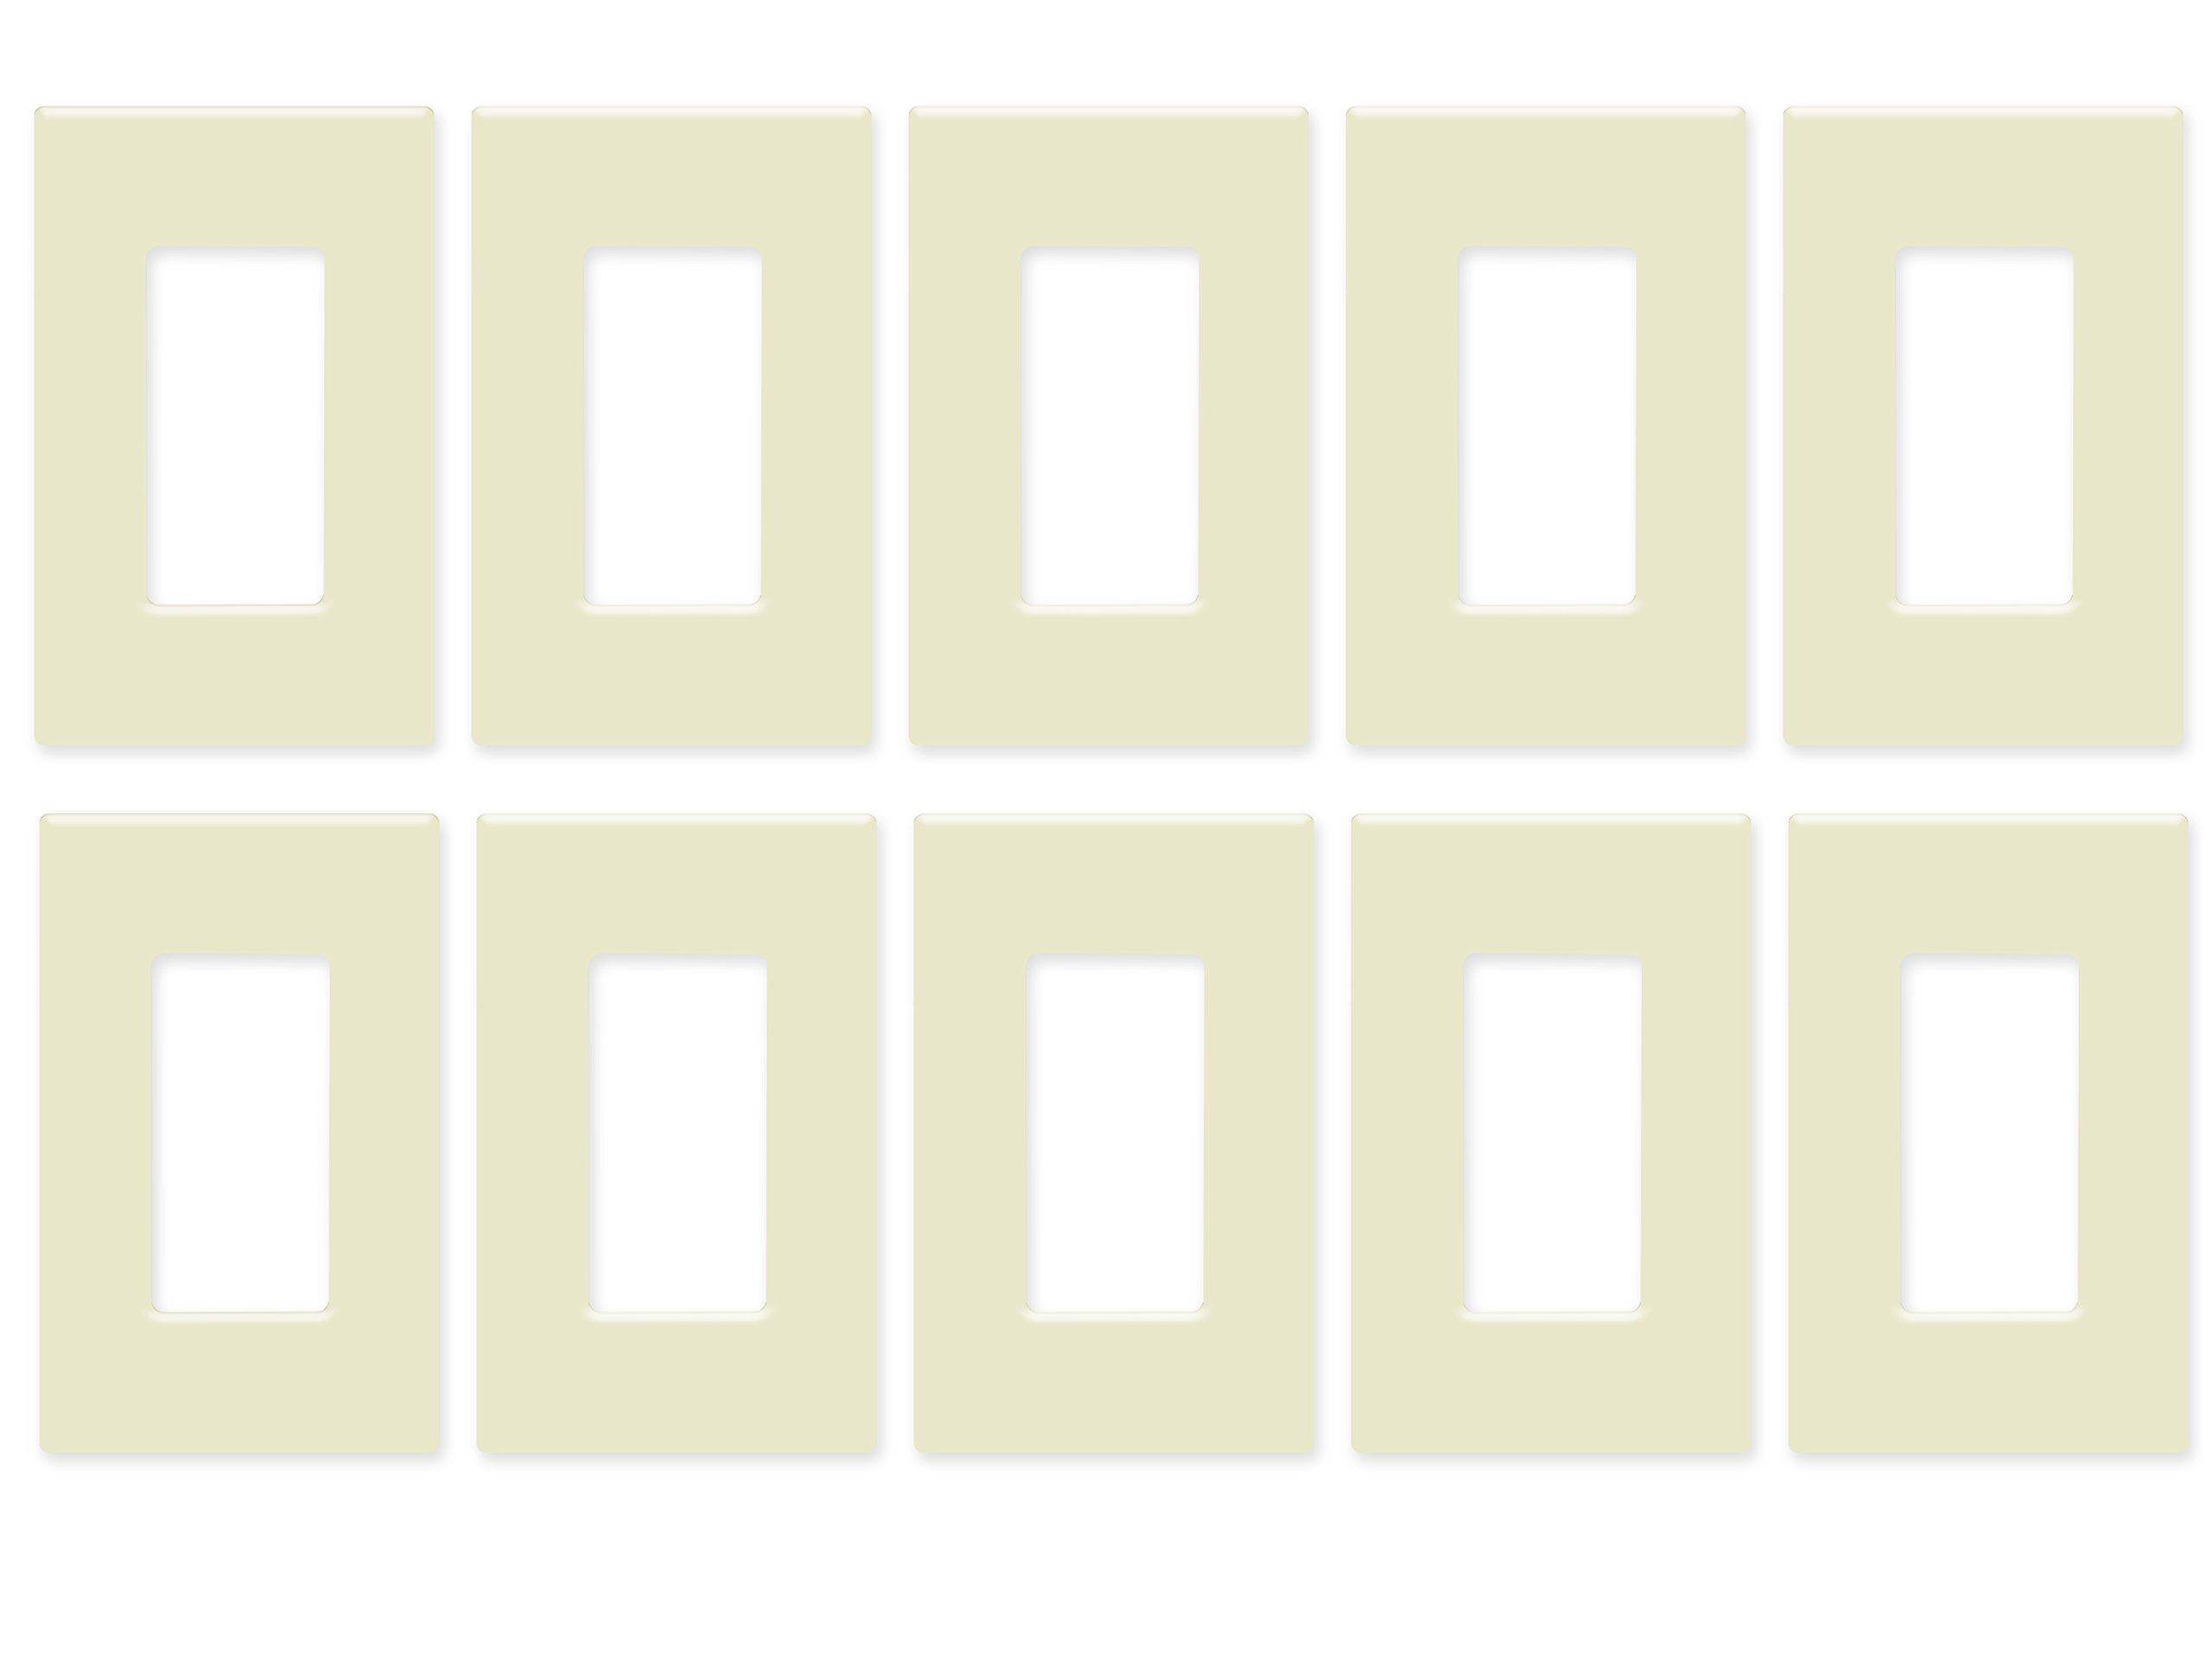 Enerlites SI8831-LA-10PCS Screwless Decorator Wall Plate Child Safe Outlet Cover, 1-Gang Standard Size, Unbreakable Polycarbonate Thermoplastic, Light Almond (10 Pack)